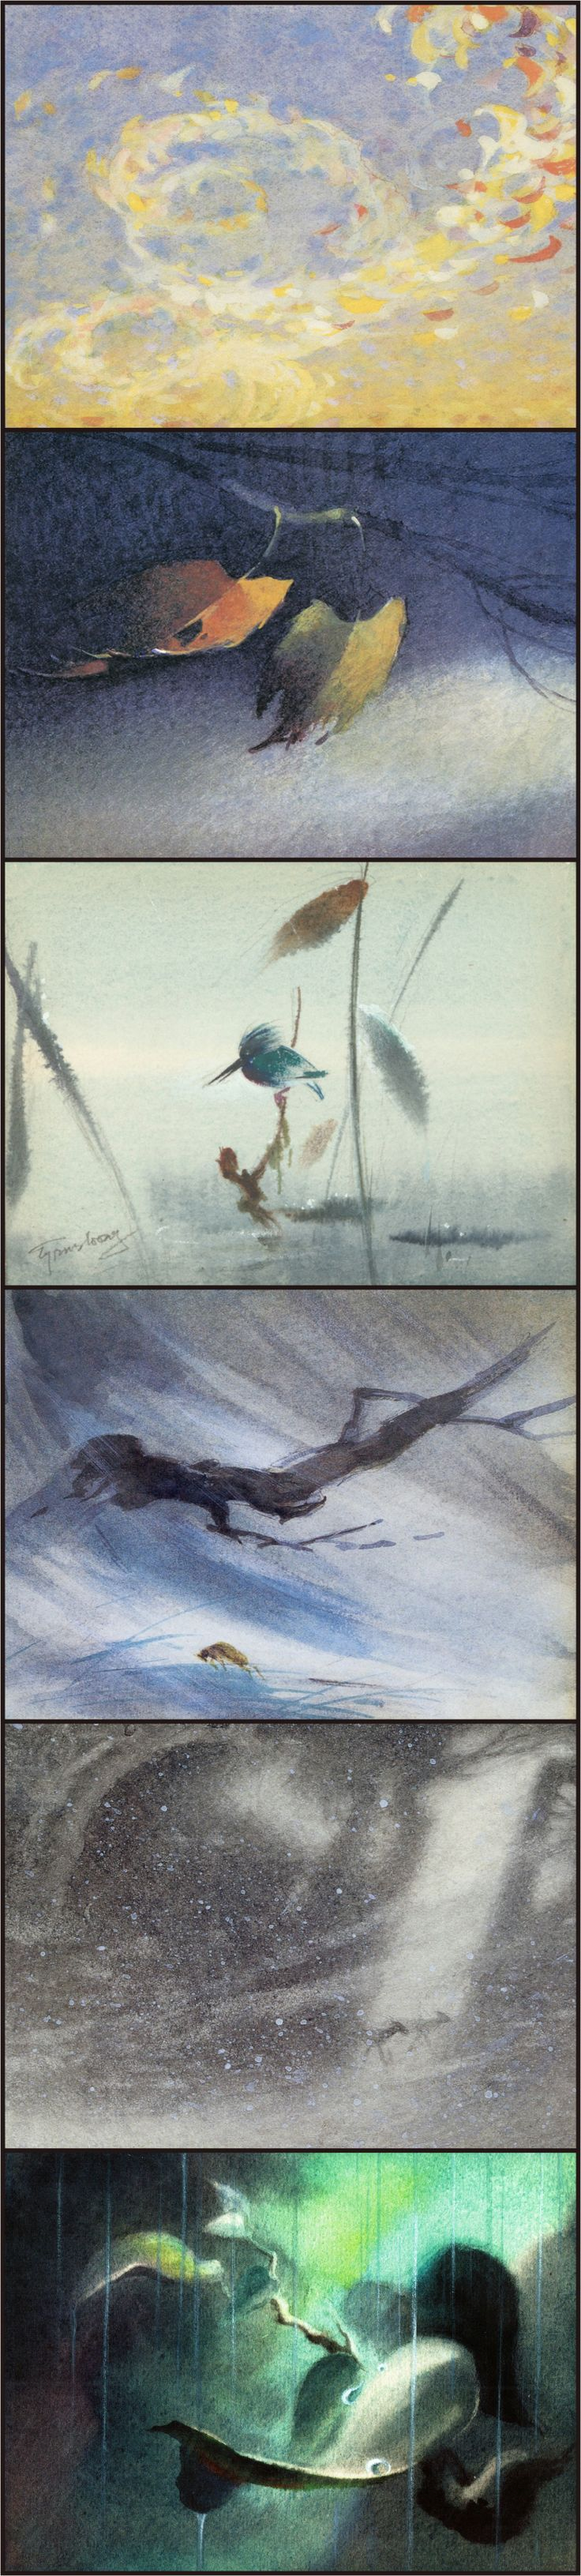 Bambi concept art by Tyrus Wong